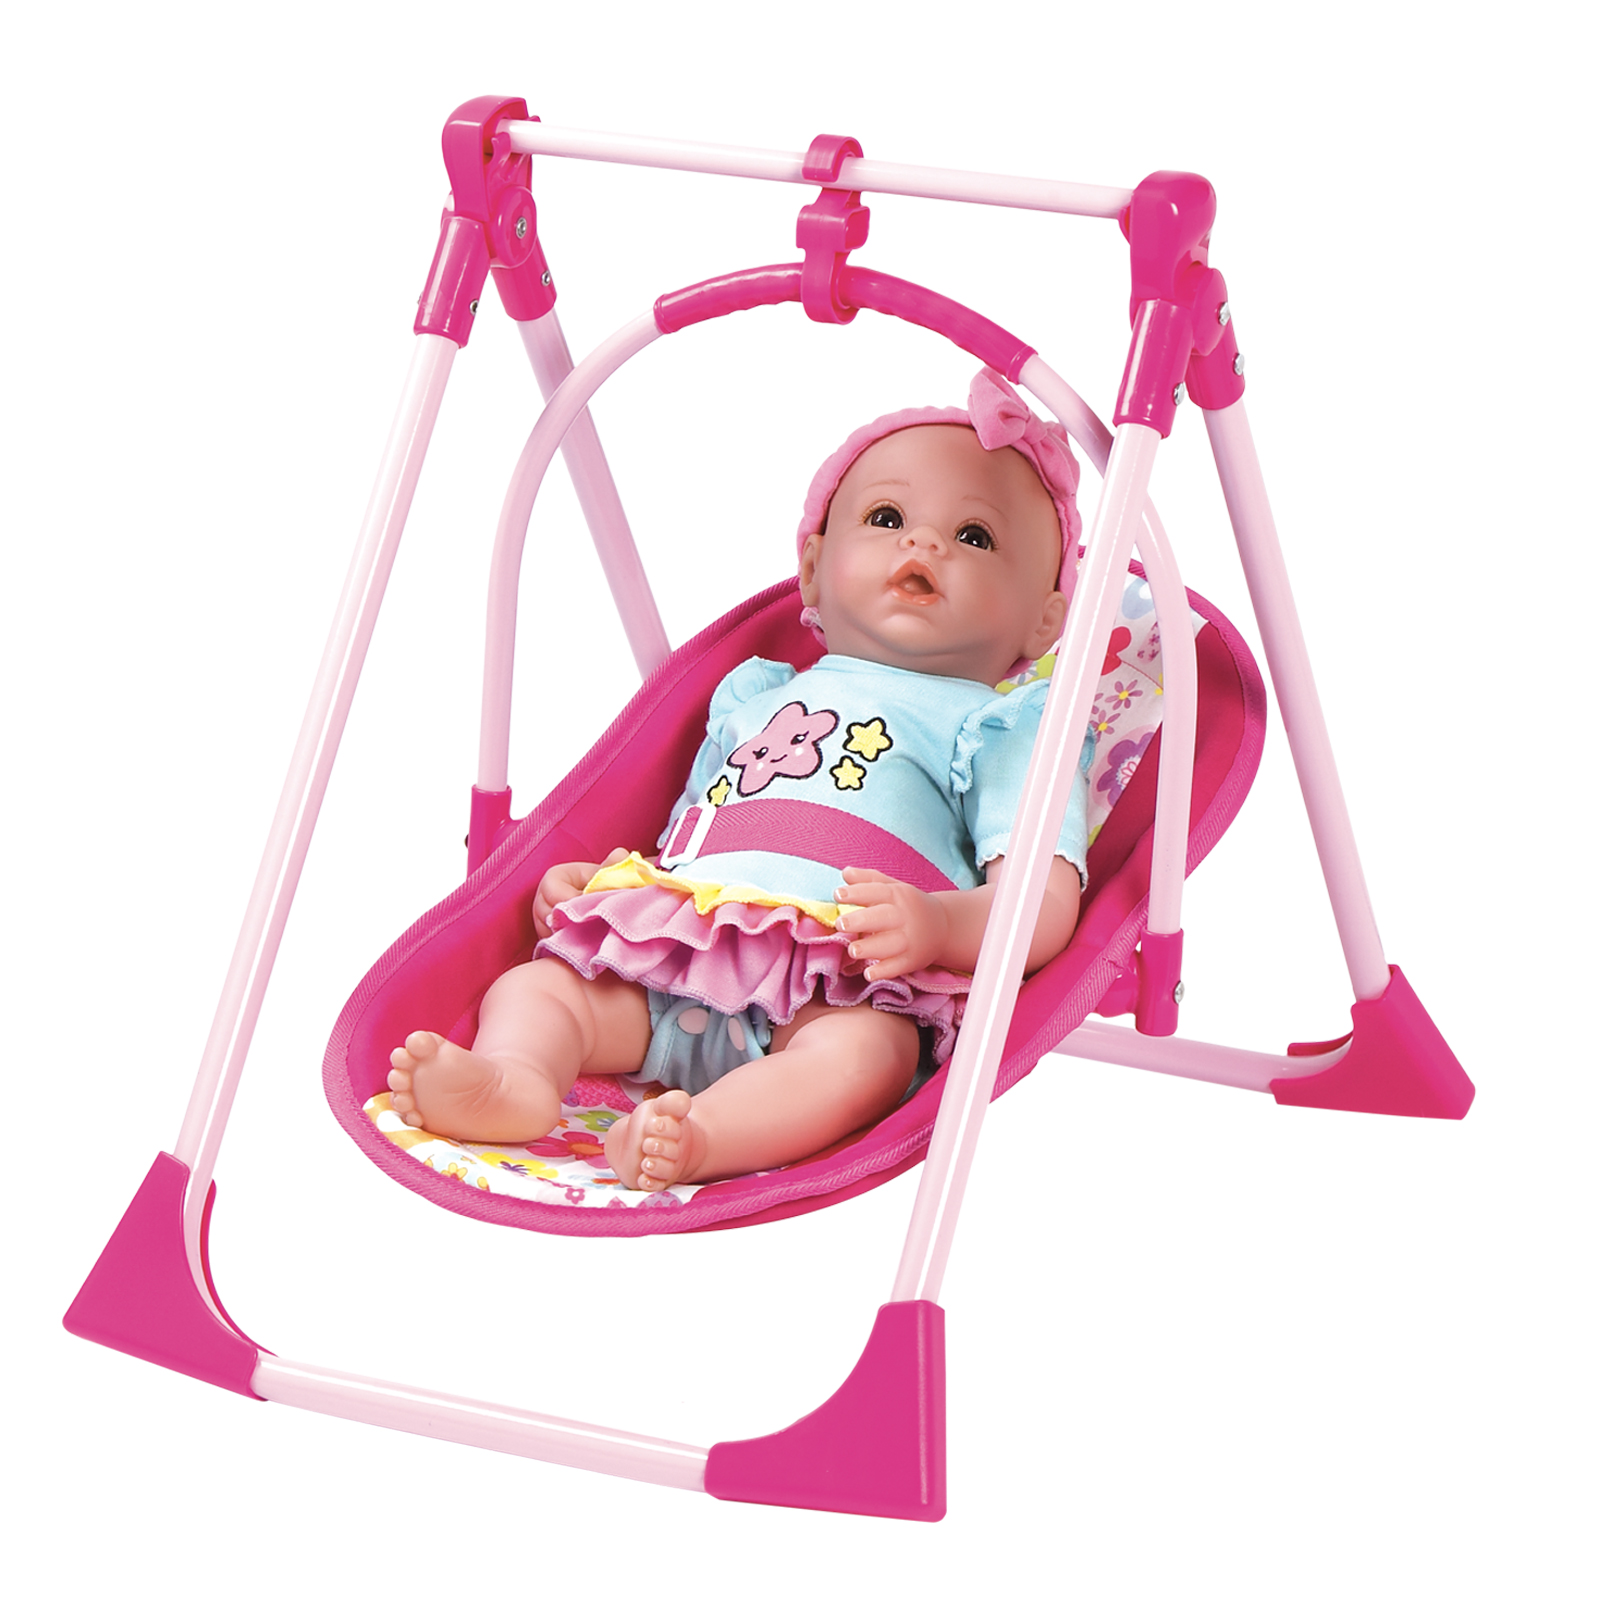 graco baby swing chair uk democratic national committee best outdoor images children toys ideas